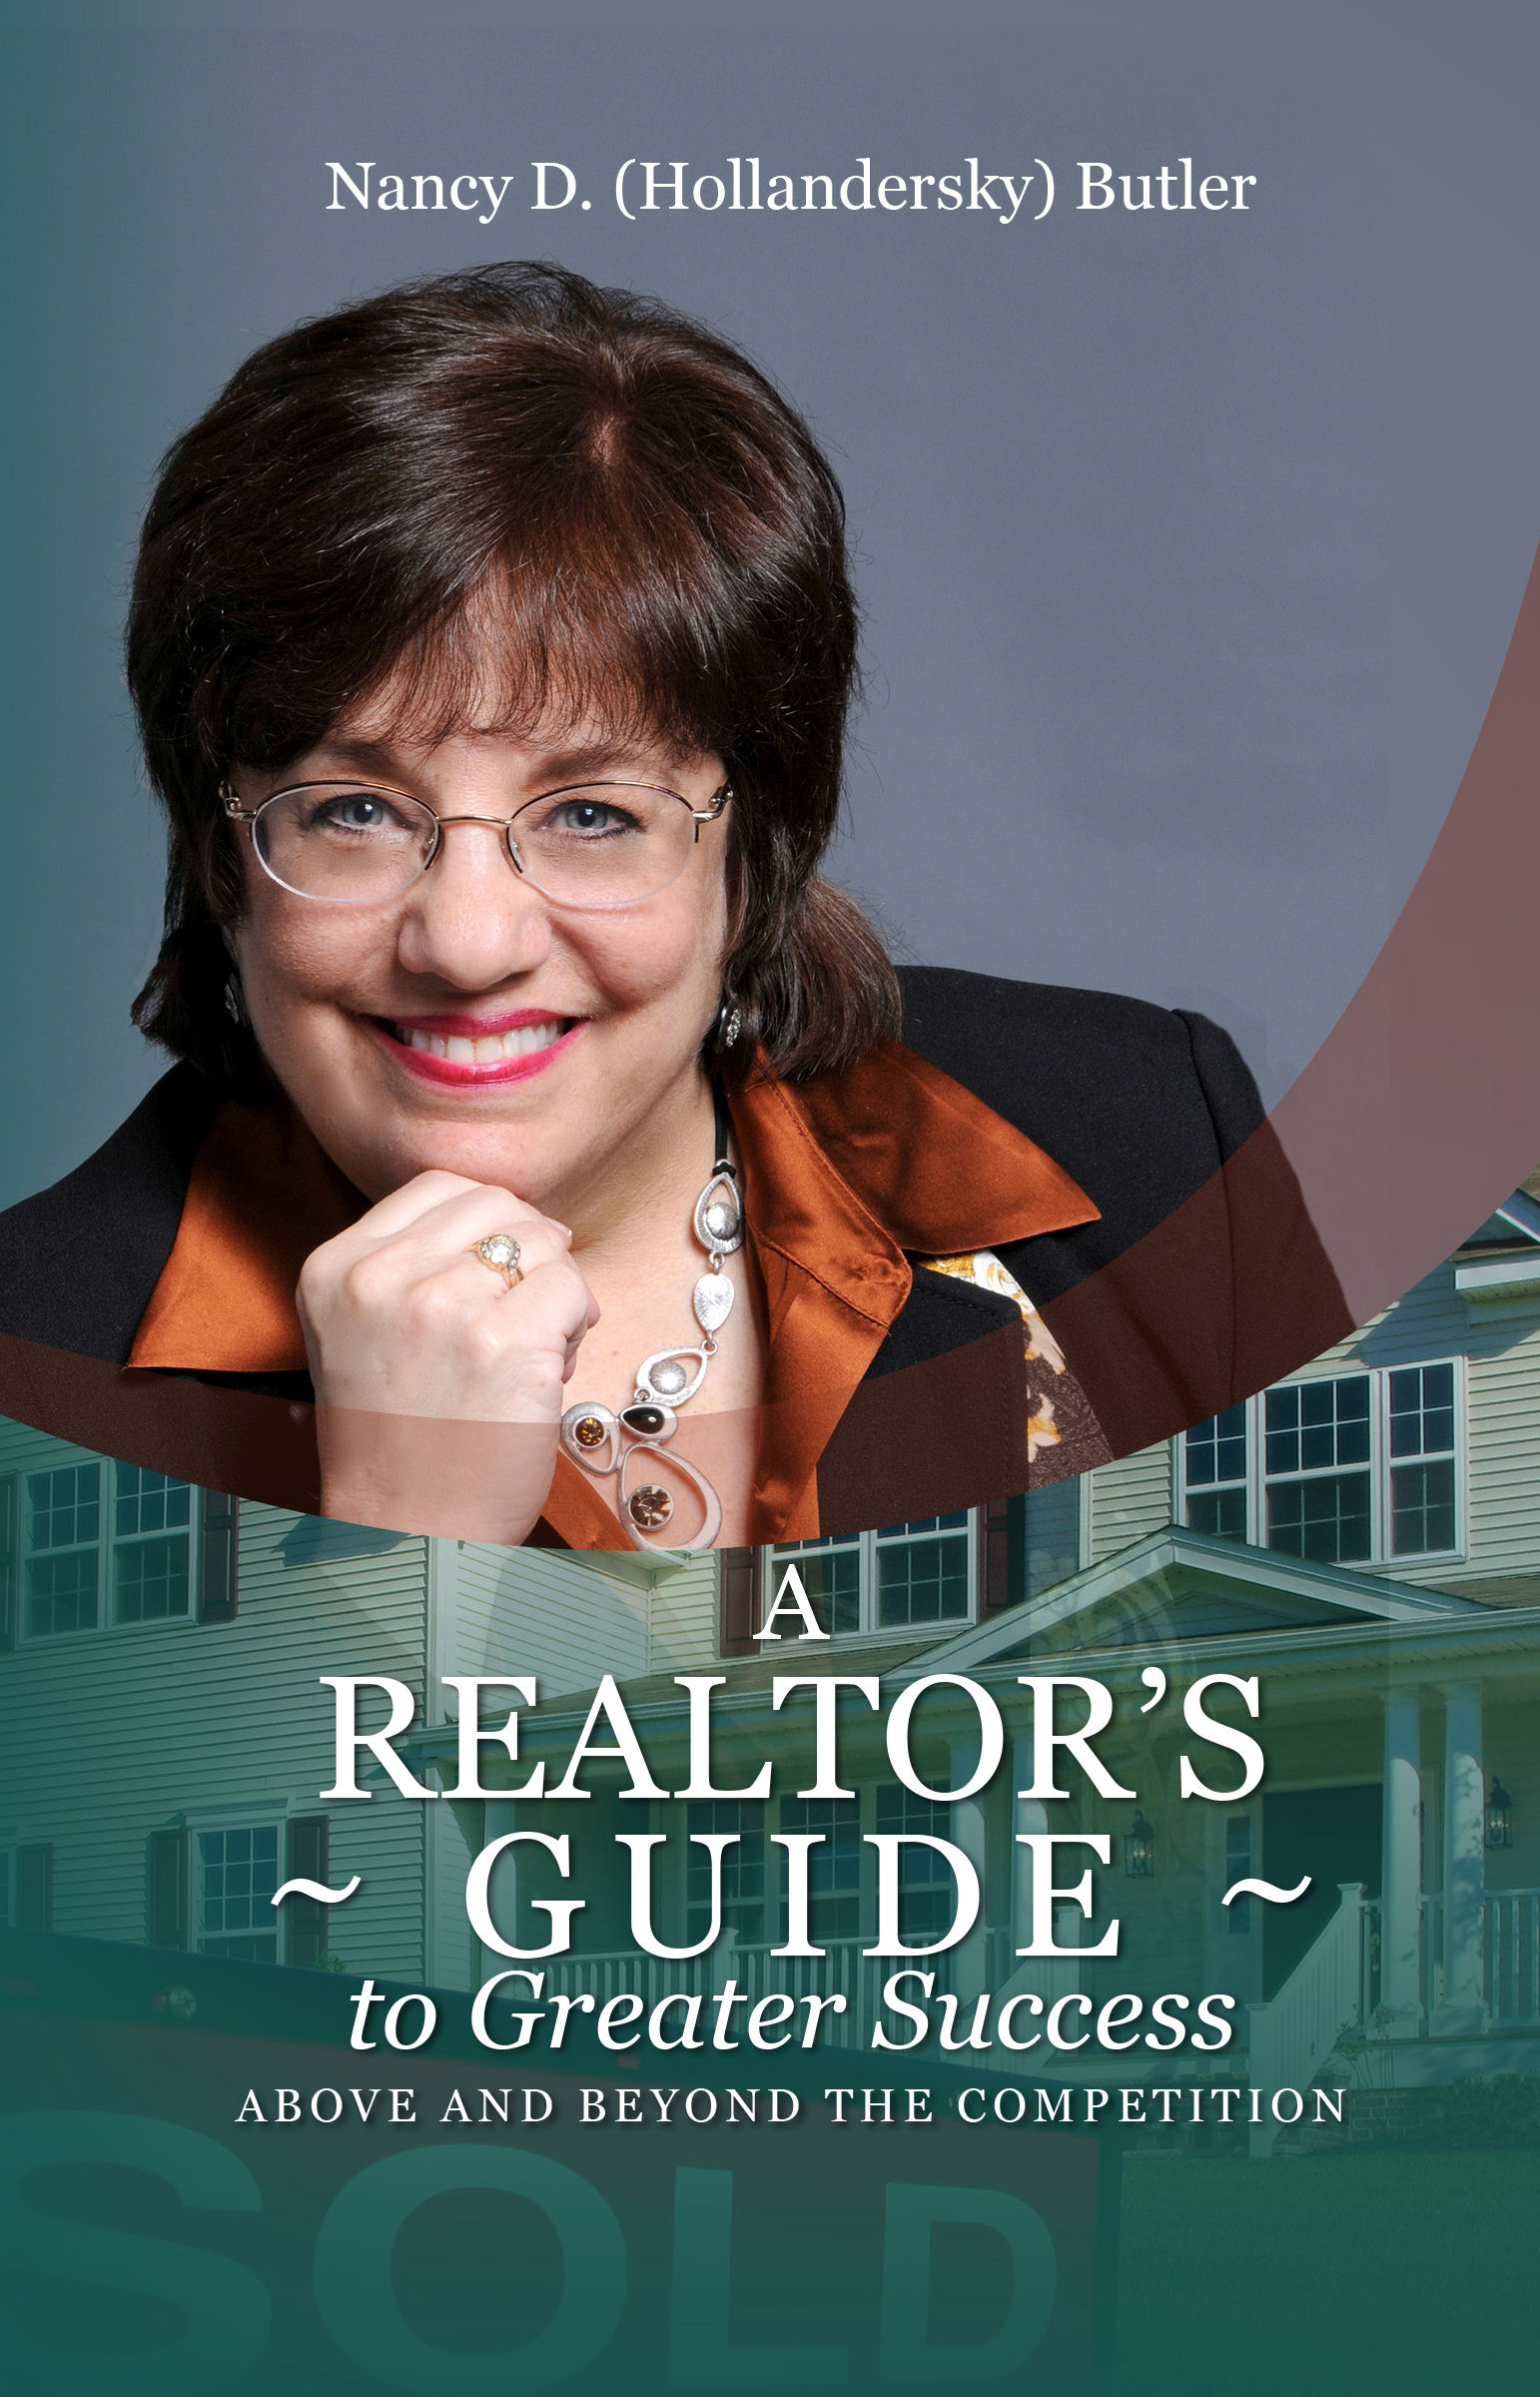 A Realtor's Guide to Greater Success, Above and Beyond the Competition